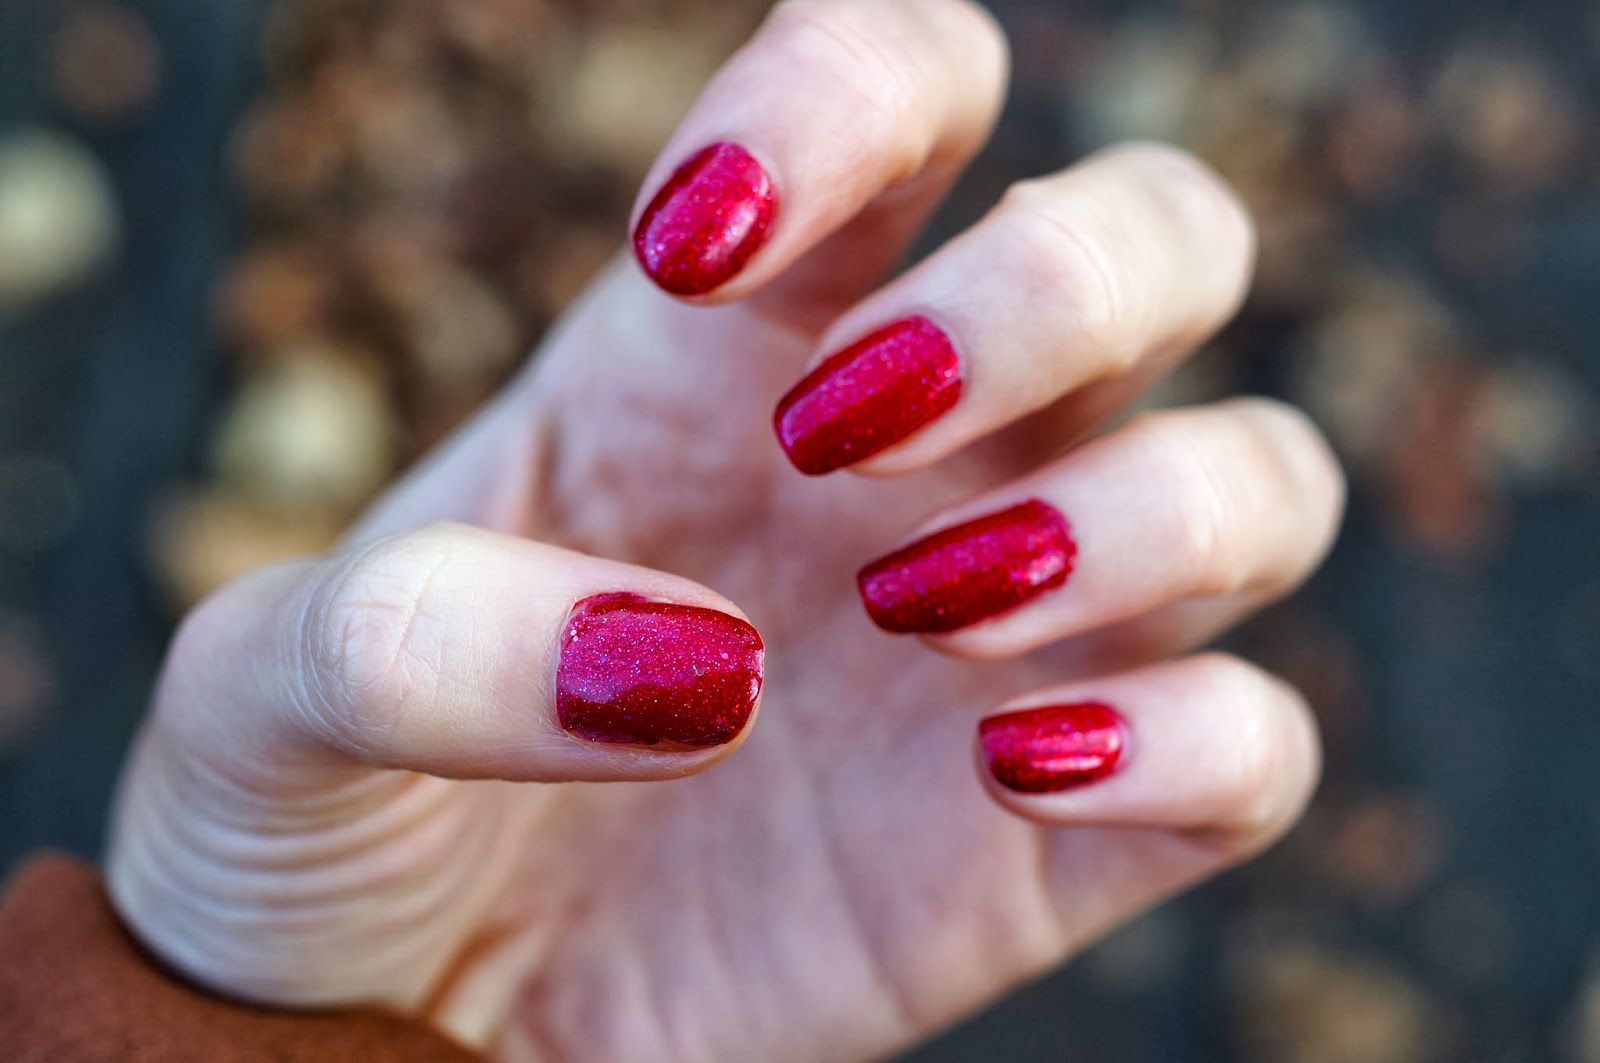 Carpet Manicure Professional LED Kit Review: Easy Gel Nails At Home